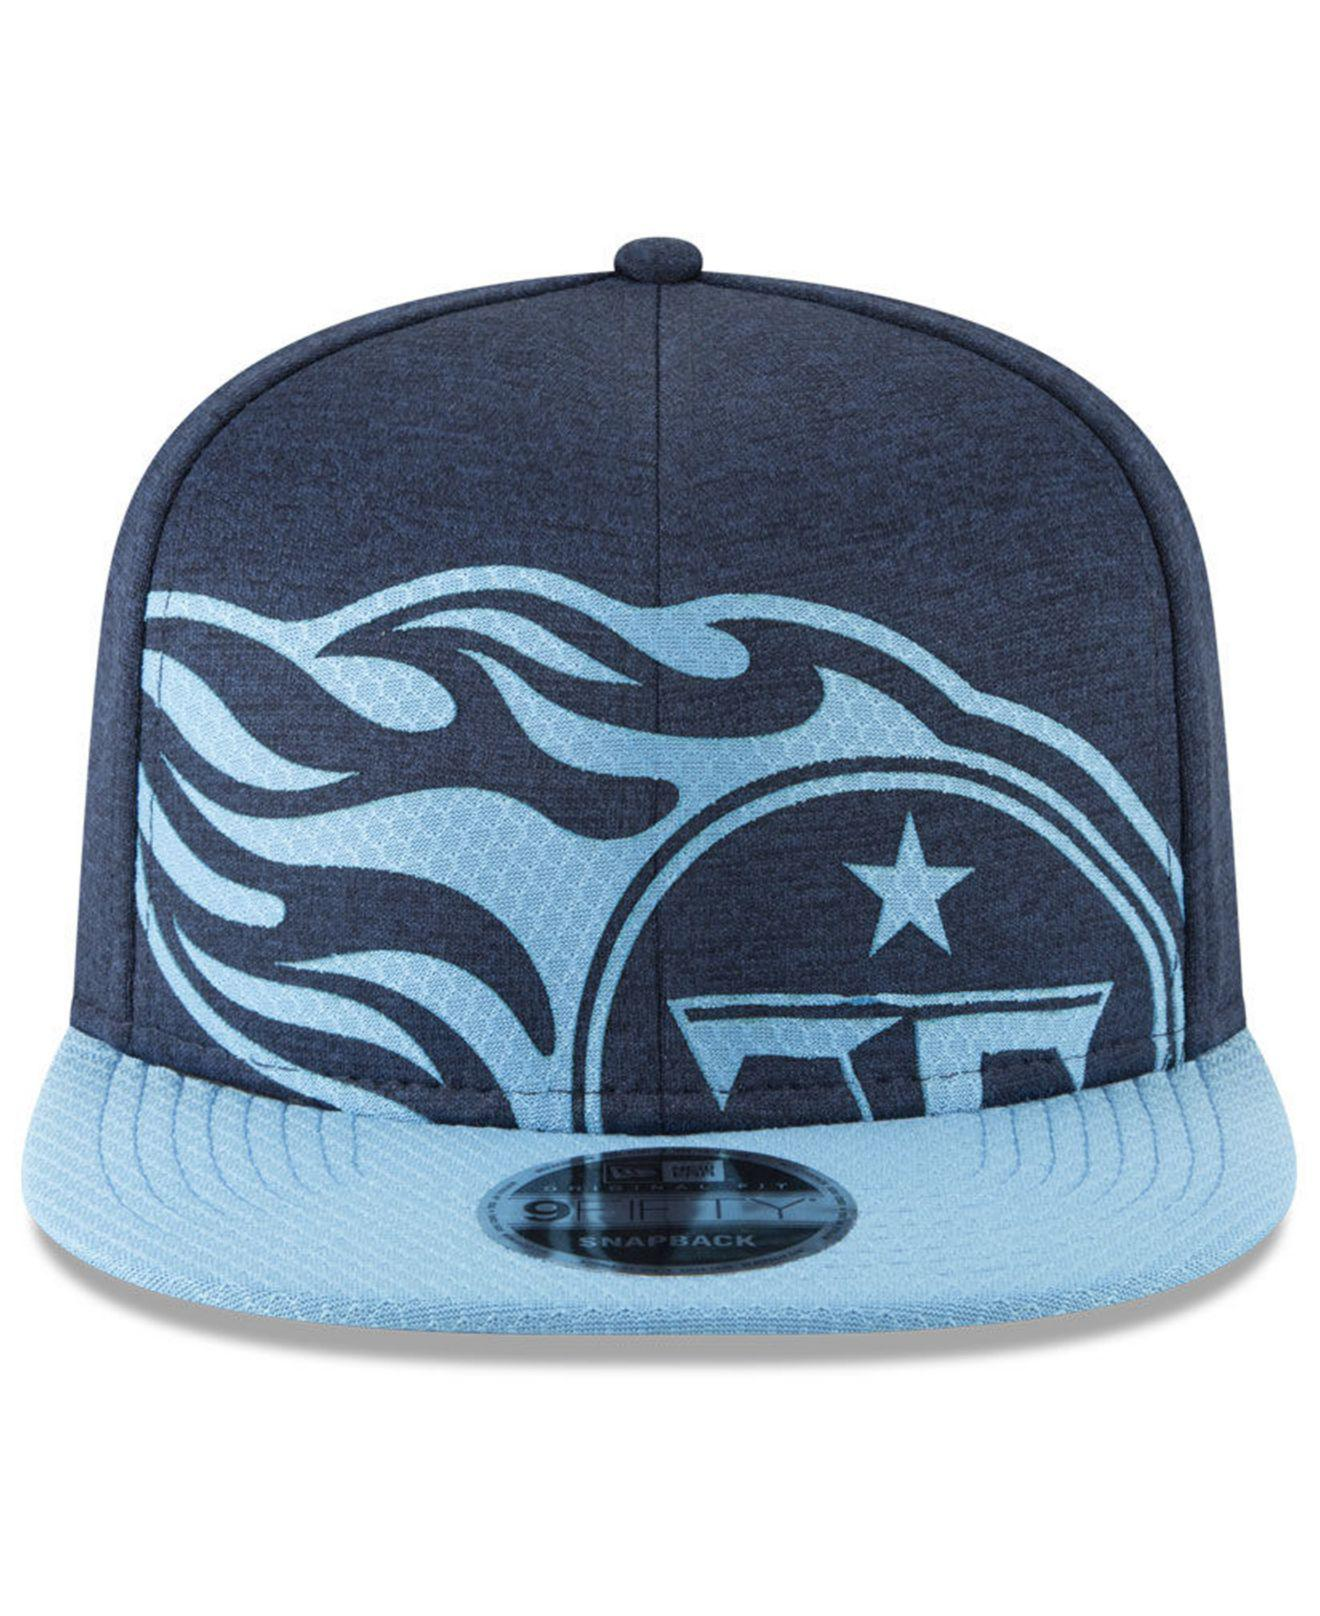 fdfb506928e Lyst - Ktz Tennessee Titans Oversized Laser Cut 9fifty Snapback Cap in Blue  for Men